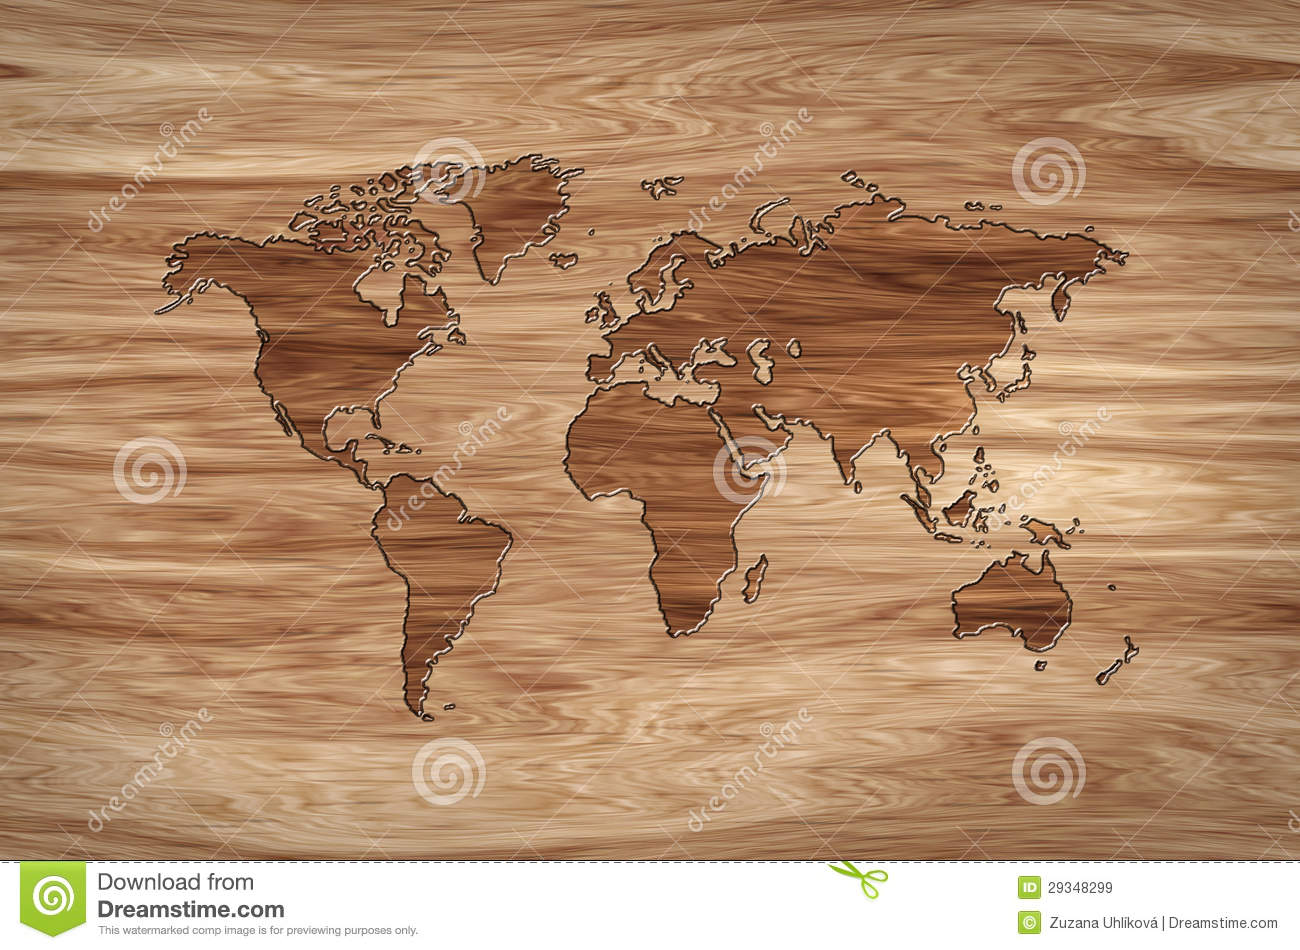 World map carved in wood stock illustration Image of brown 29348299